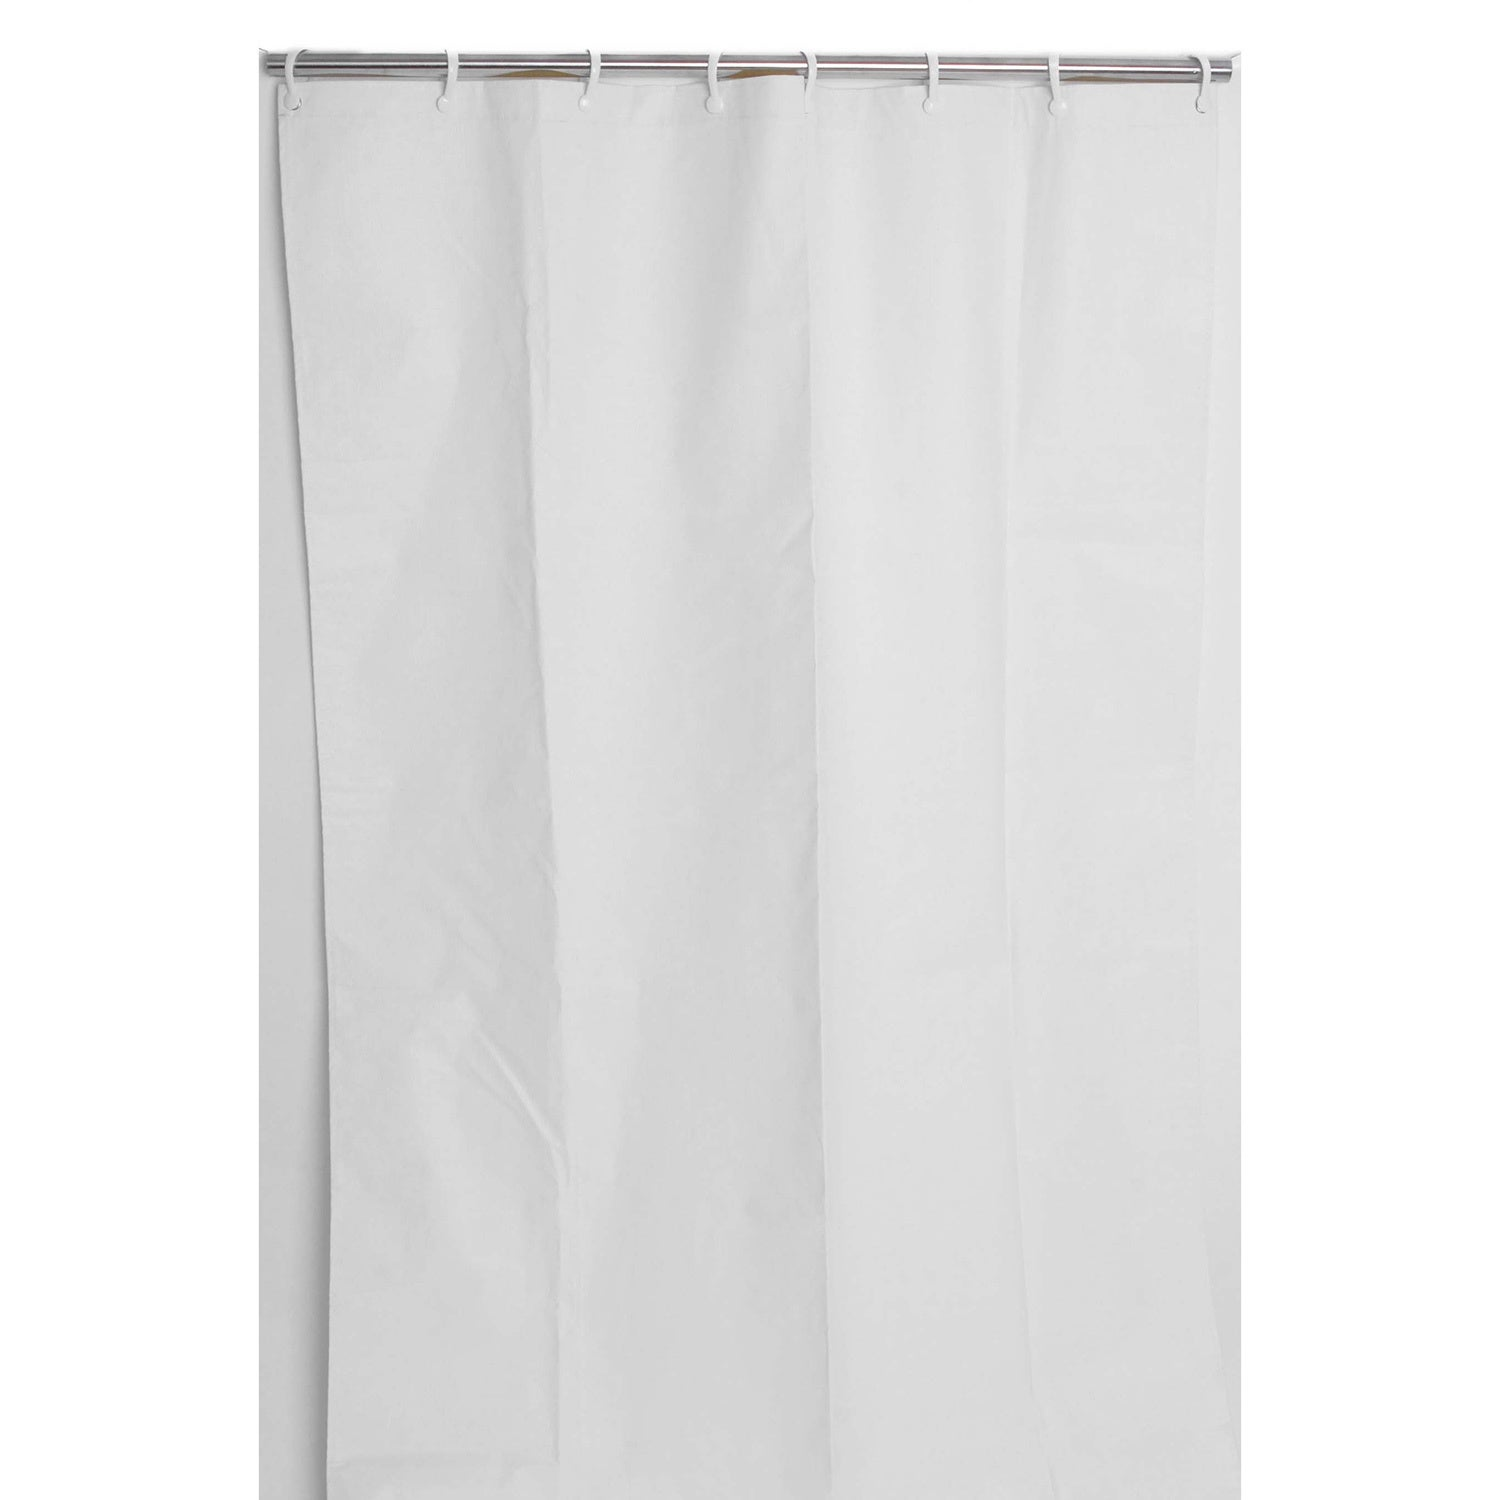 Shop 54 X 72Heavy Duty Staph Mold And Odor Resistant Commercial Shower Curtain Pack Of 10